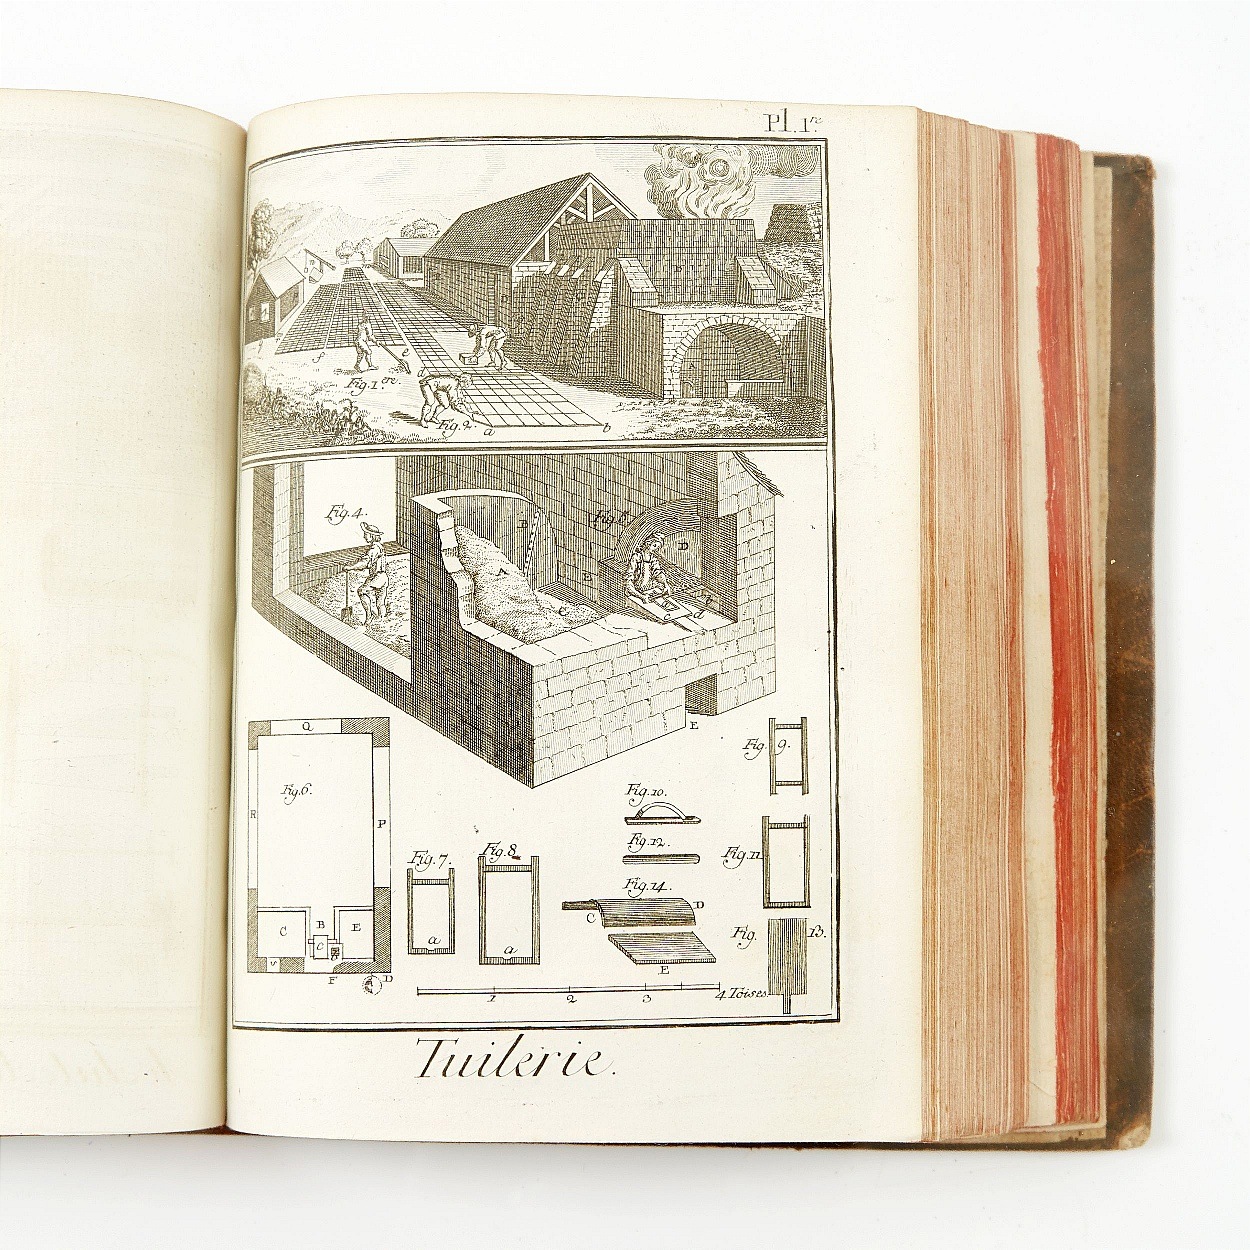 Diderot- D'Alembert Encyclopedia in quarto edition